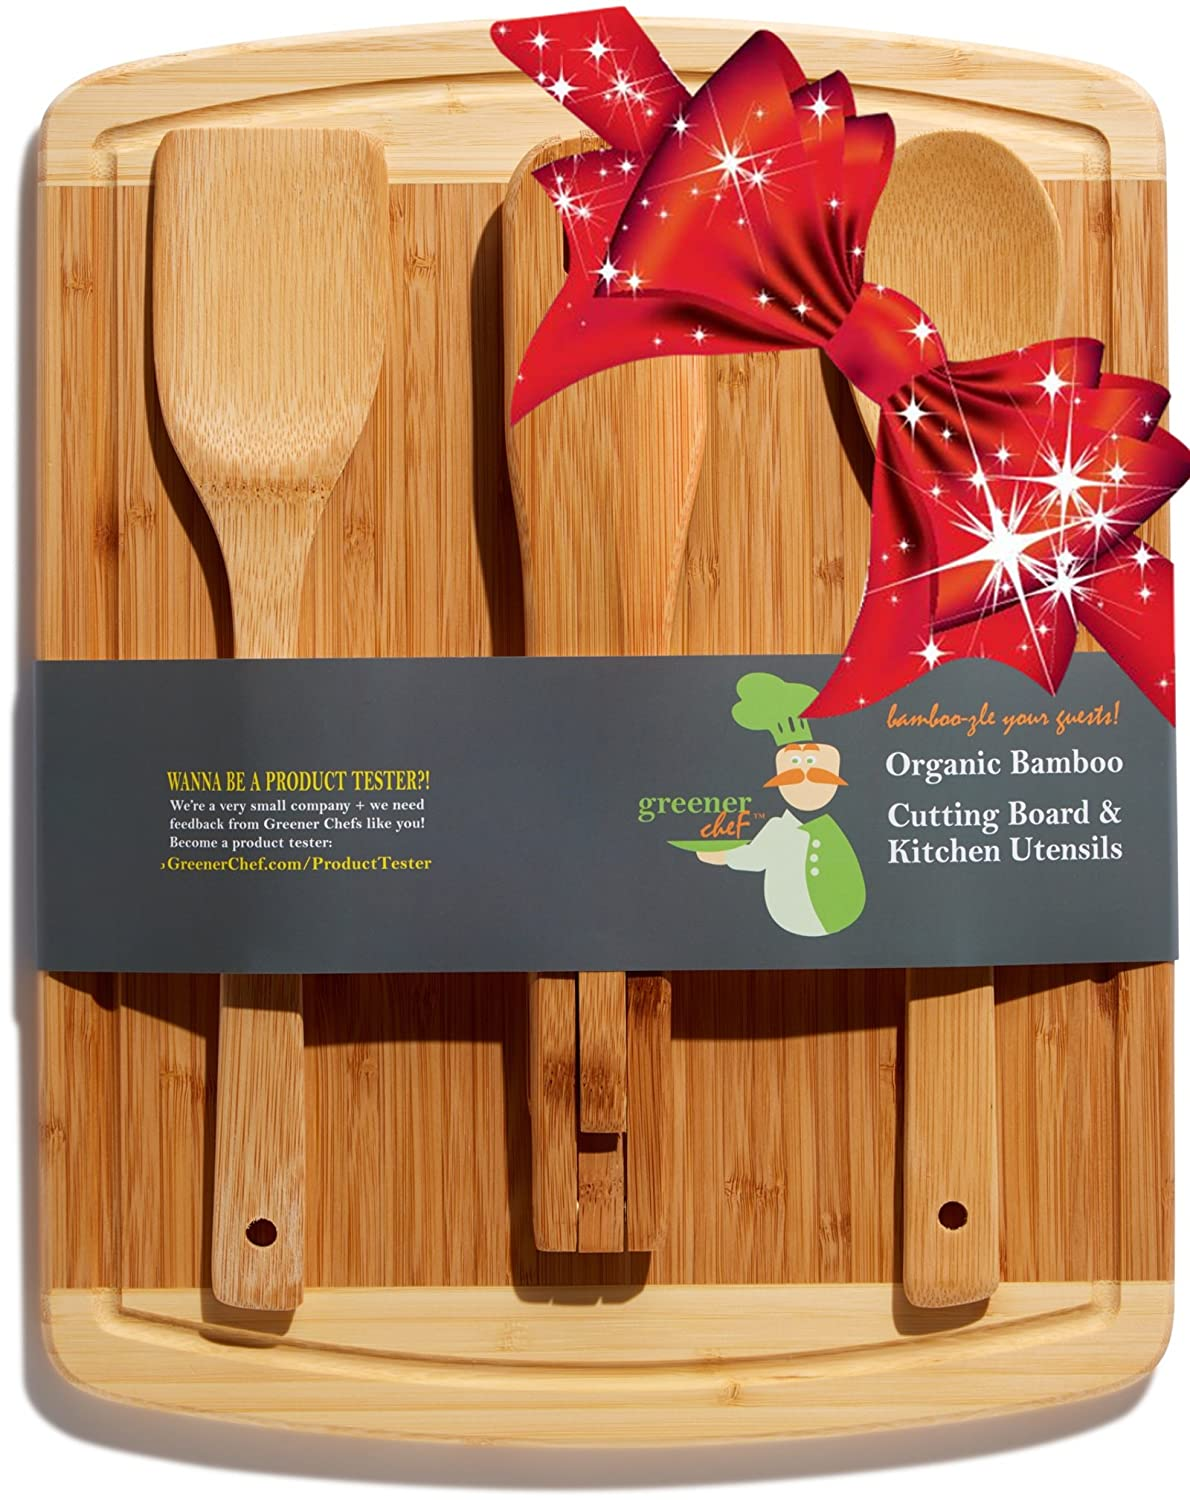 Bamboo Cutting Board Housewarming Gift Set With Bonus 3 Piece Cooking Utensils Wooden Spoon Salad Tongs And Wood Spatula Mother S Day Wedding